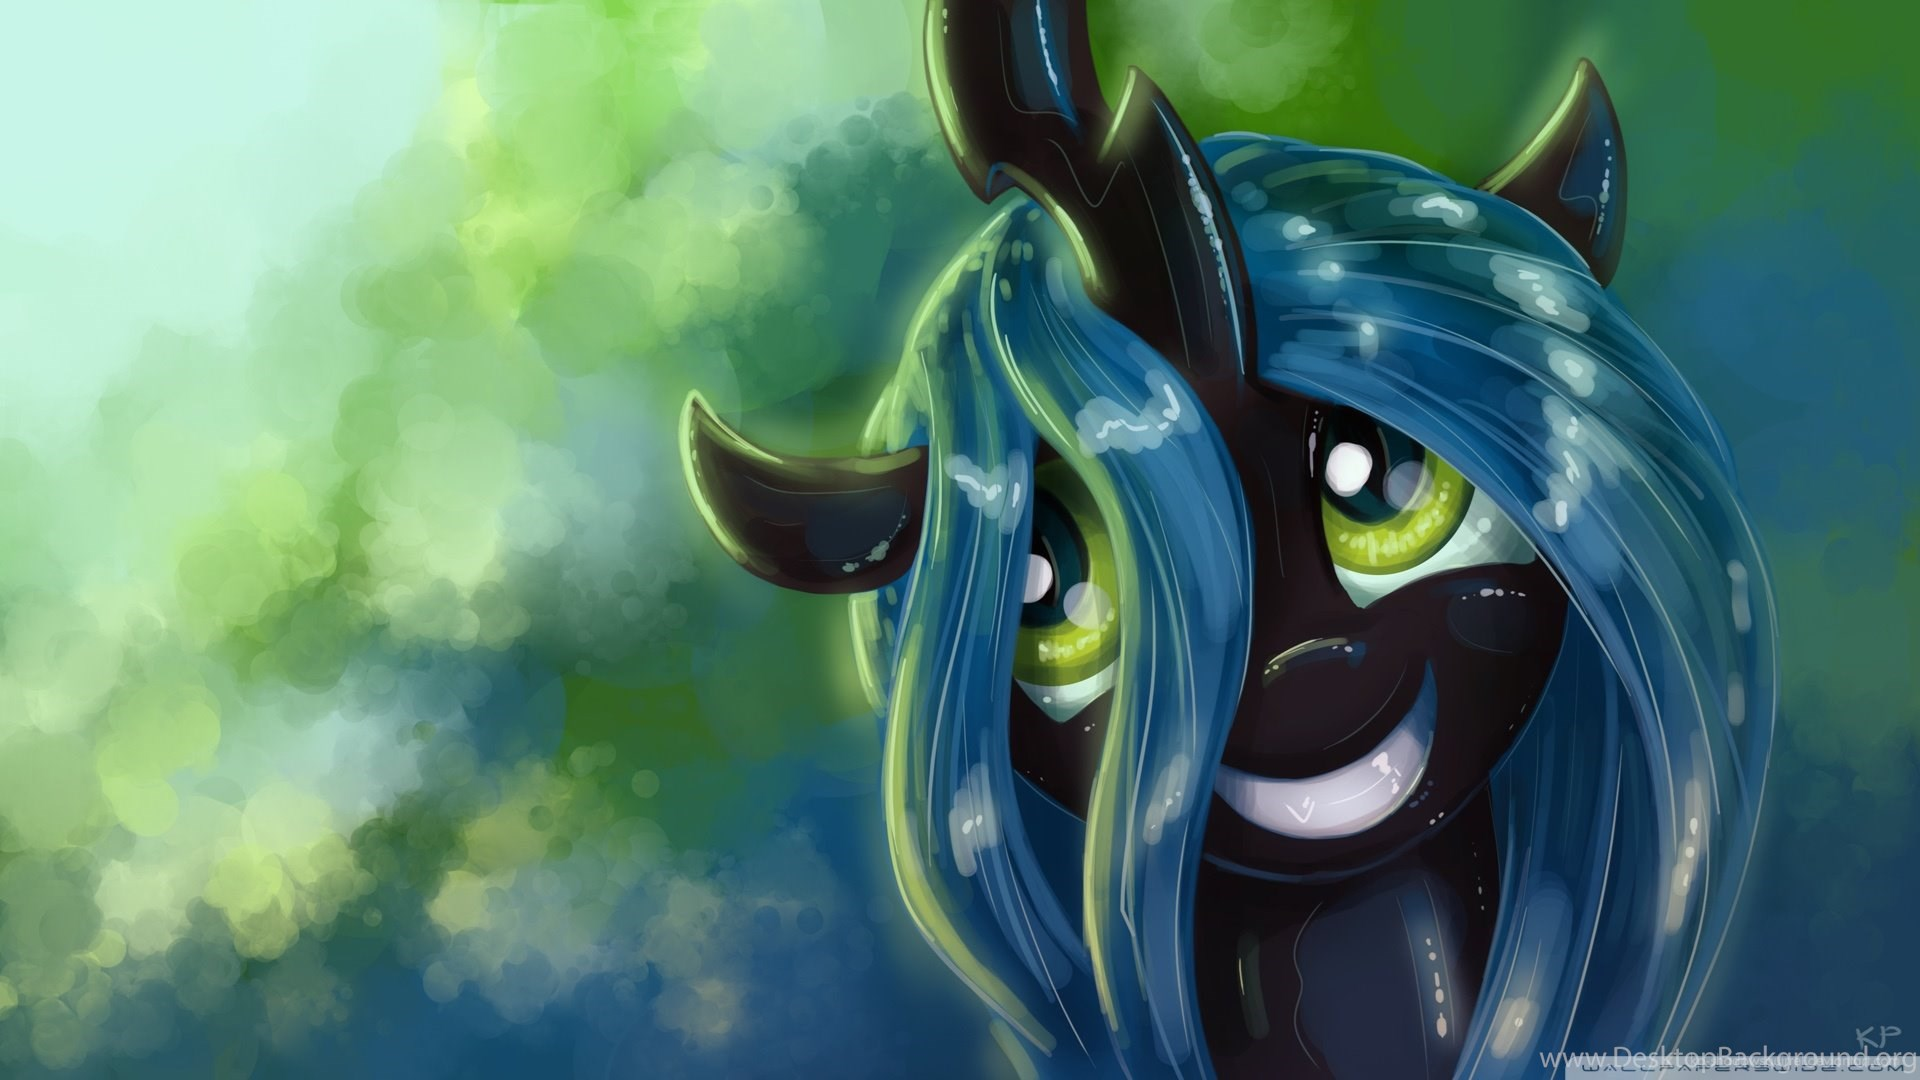 My Little Pony Wallpapers Full Hd 1920x1080 Free Wallpapers Full